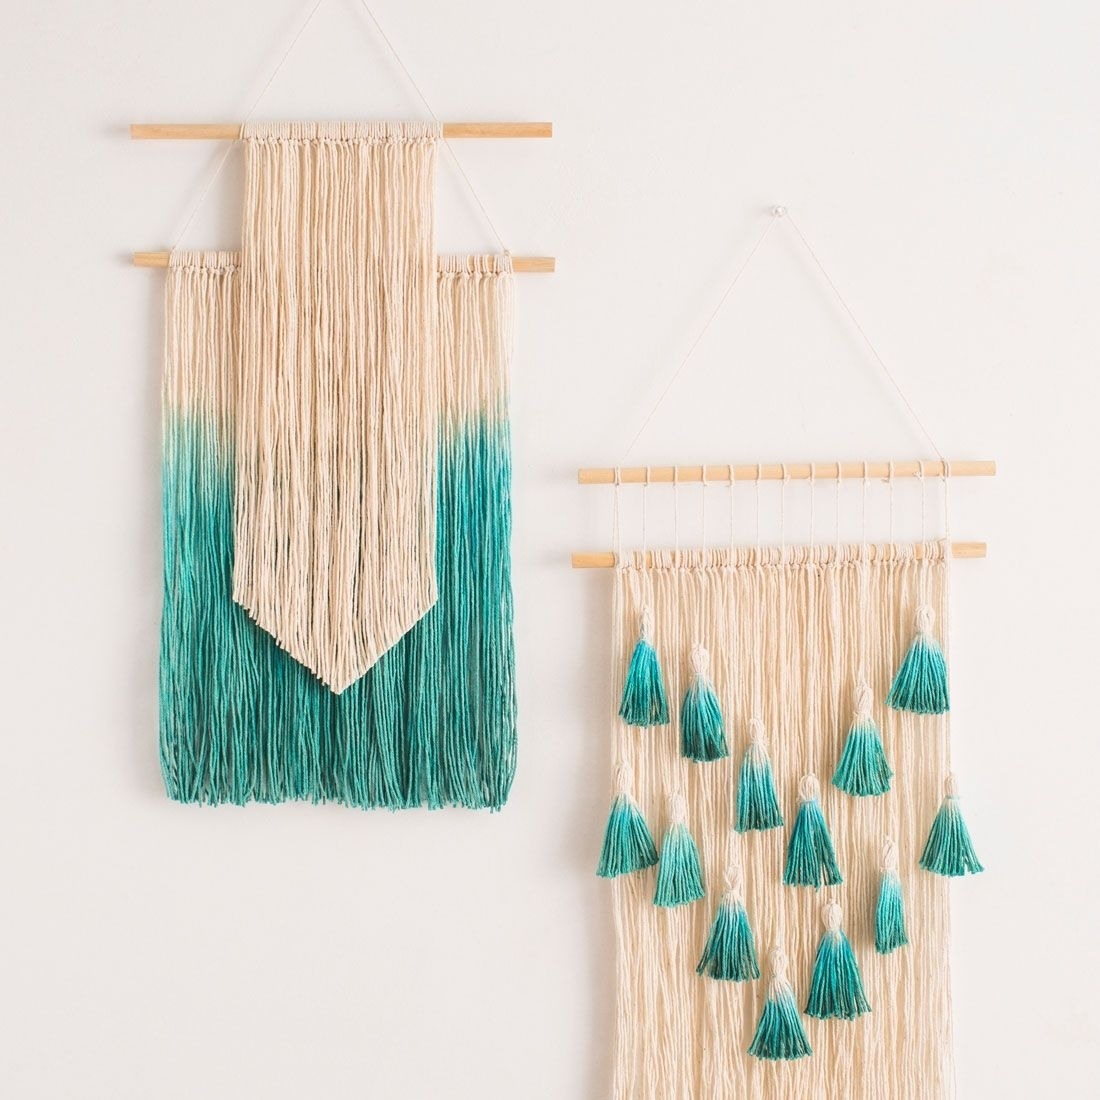 9 Diys For Your College Apartment | Diy Wall Art, Diy Wall And Intended For Most Popular Fabric Wall Hangings Art (Gallery 11 of 15)